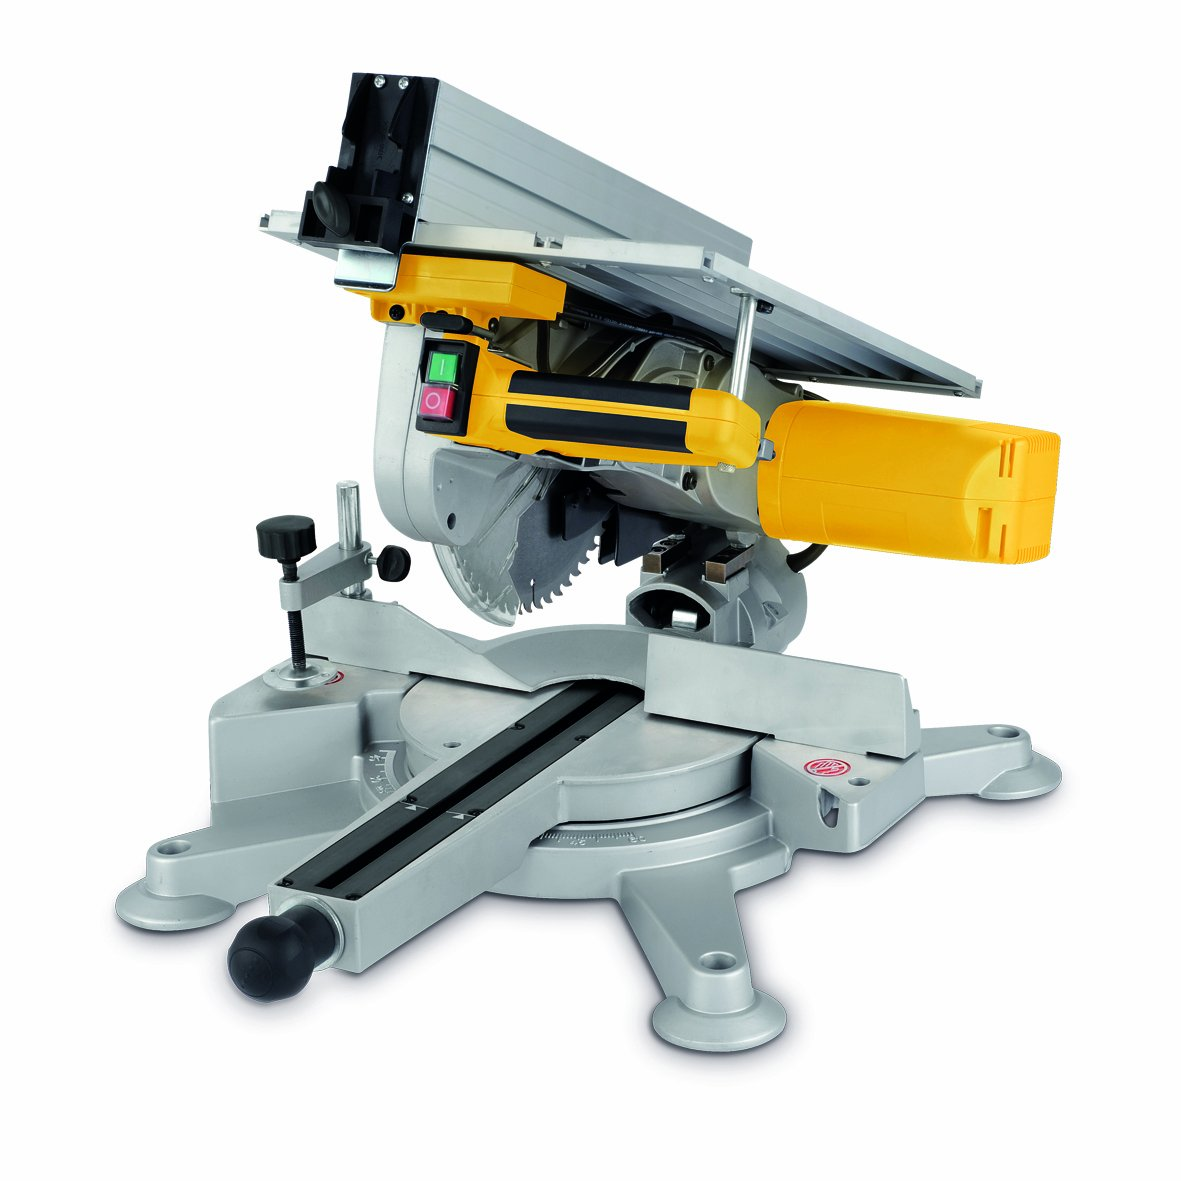 Combination Saw Bench Part - 48: Powerplus 254mm 1800 Watt Combination Mitre / Table Saw POWX0782 - 3 Year  Home User Warranty: Amazon.co.uk: DIY U0026 Tools